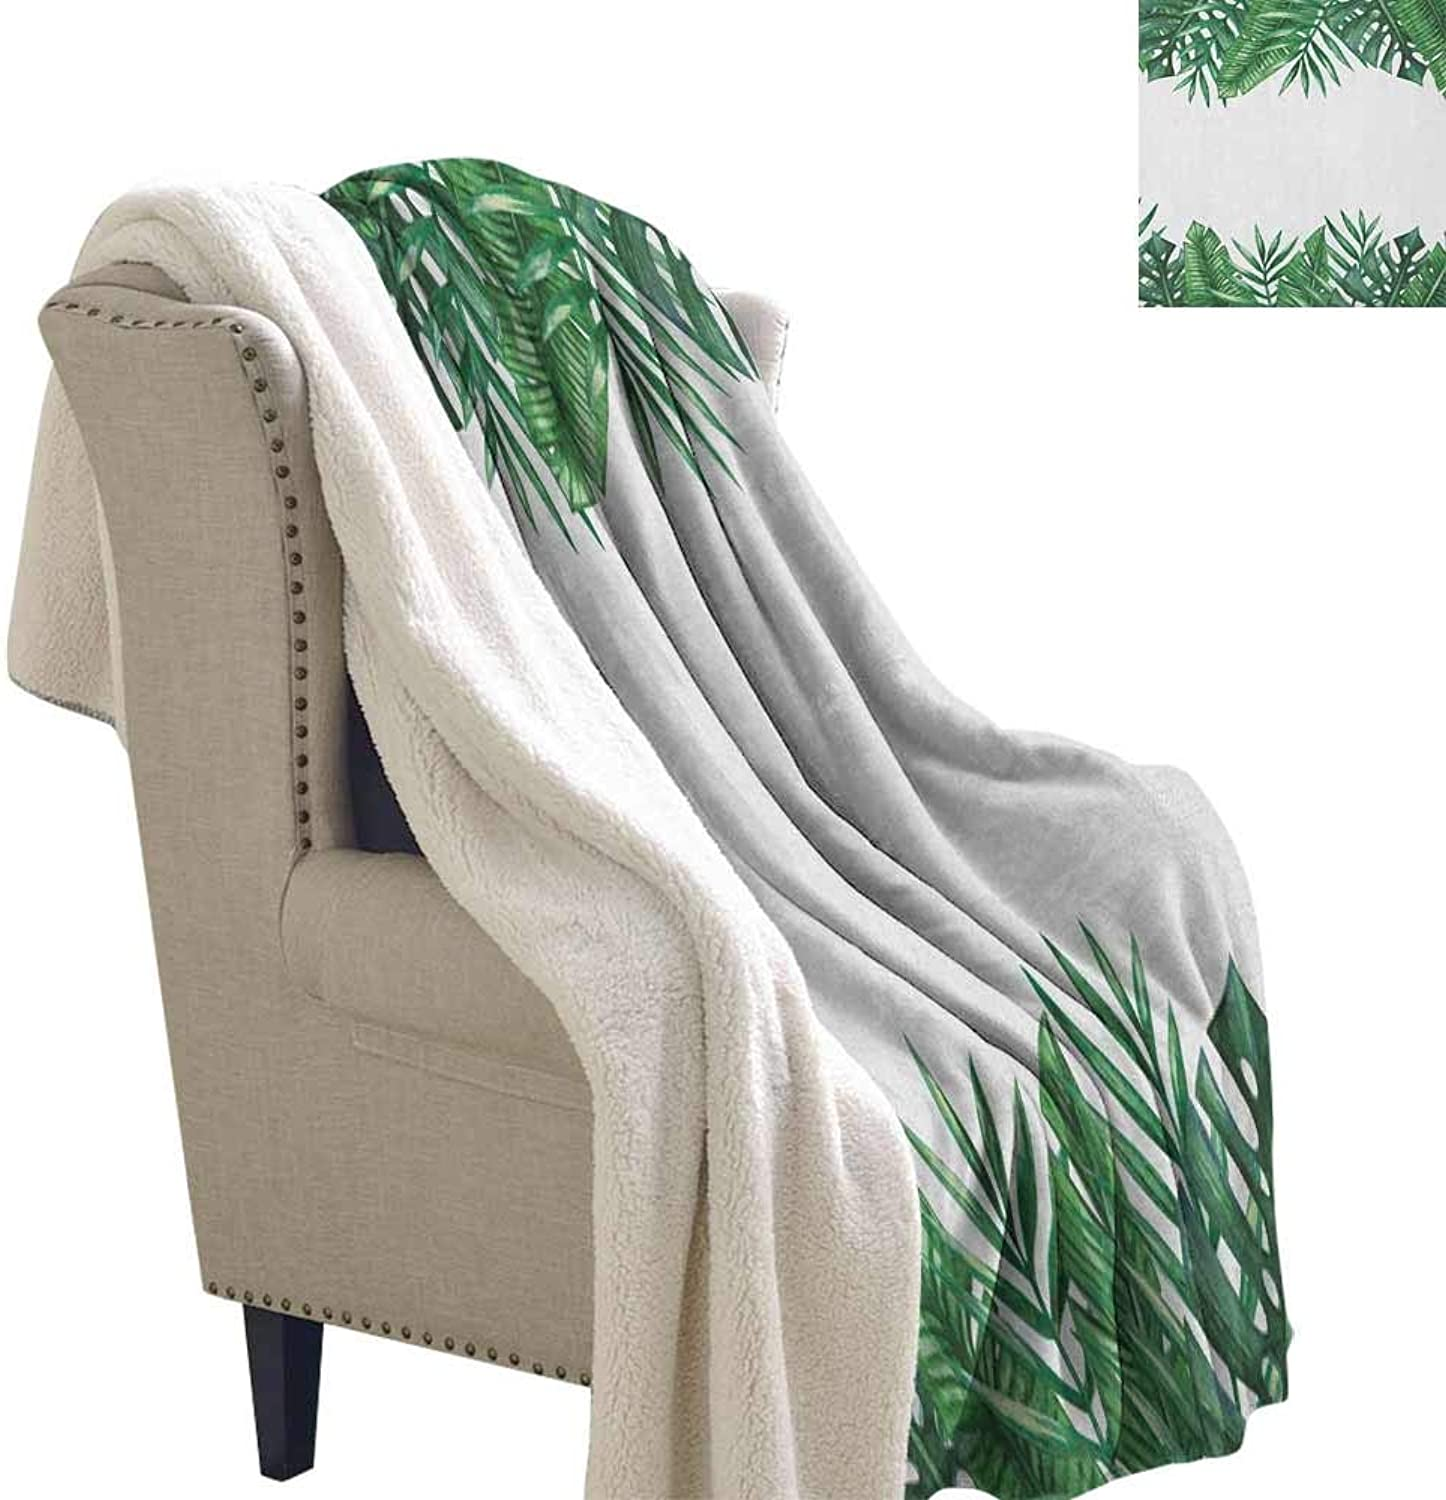 Palm Leaf Winter Quilt Framework with Rainforest Foliage Leaves in Watercolors Soft Blanket Microfiber Hunter Green Forest Green White W59 x L31